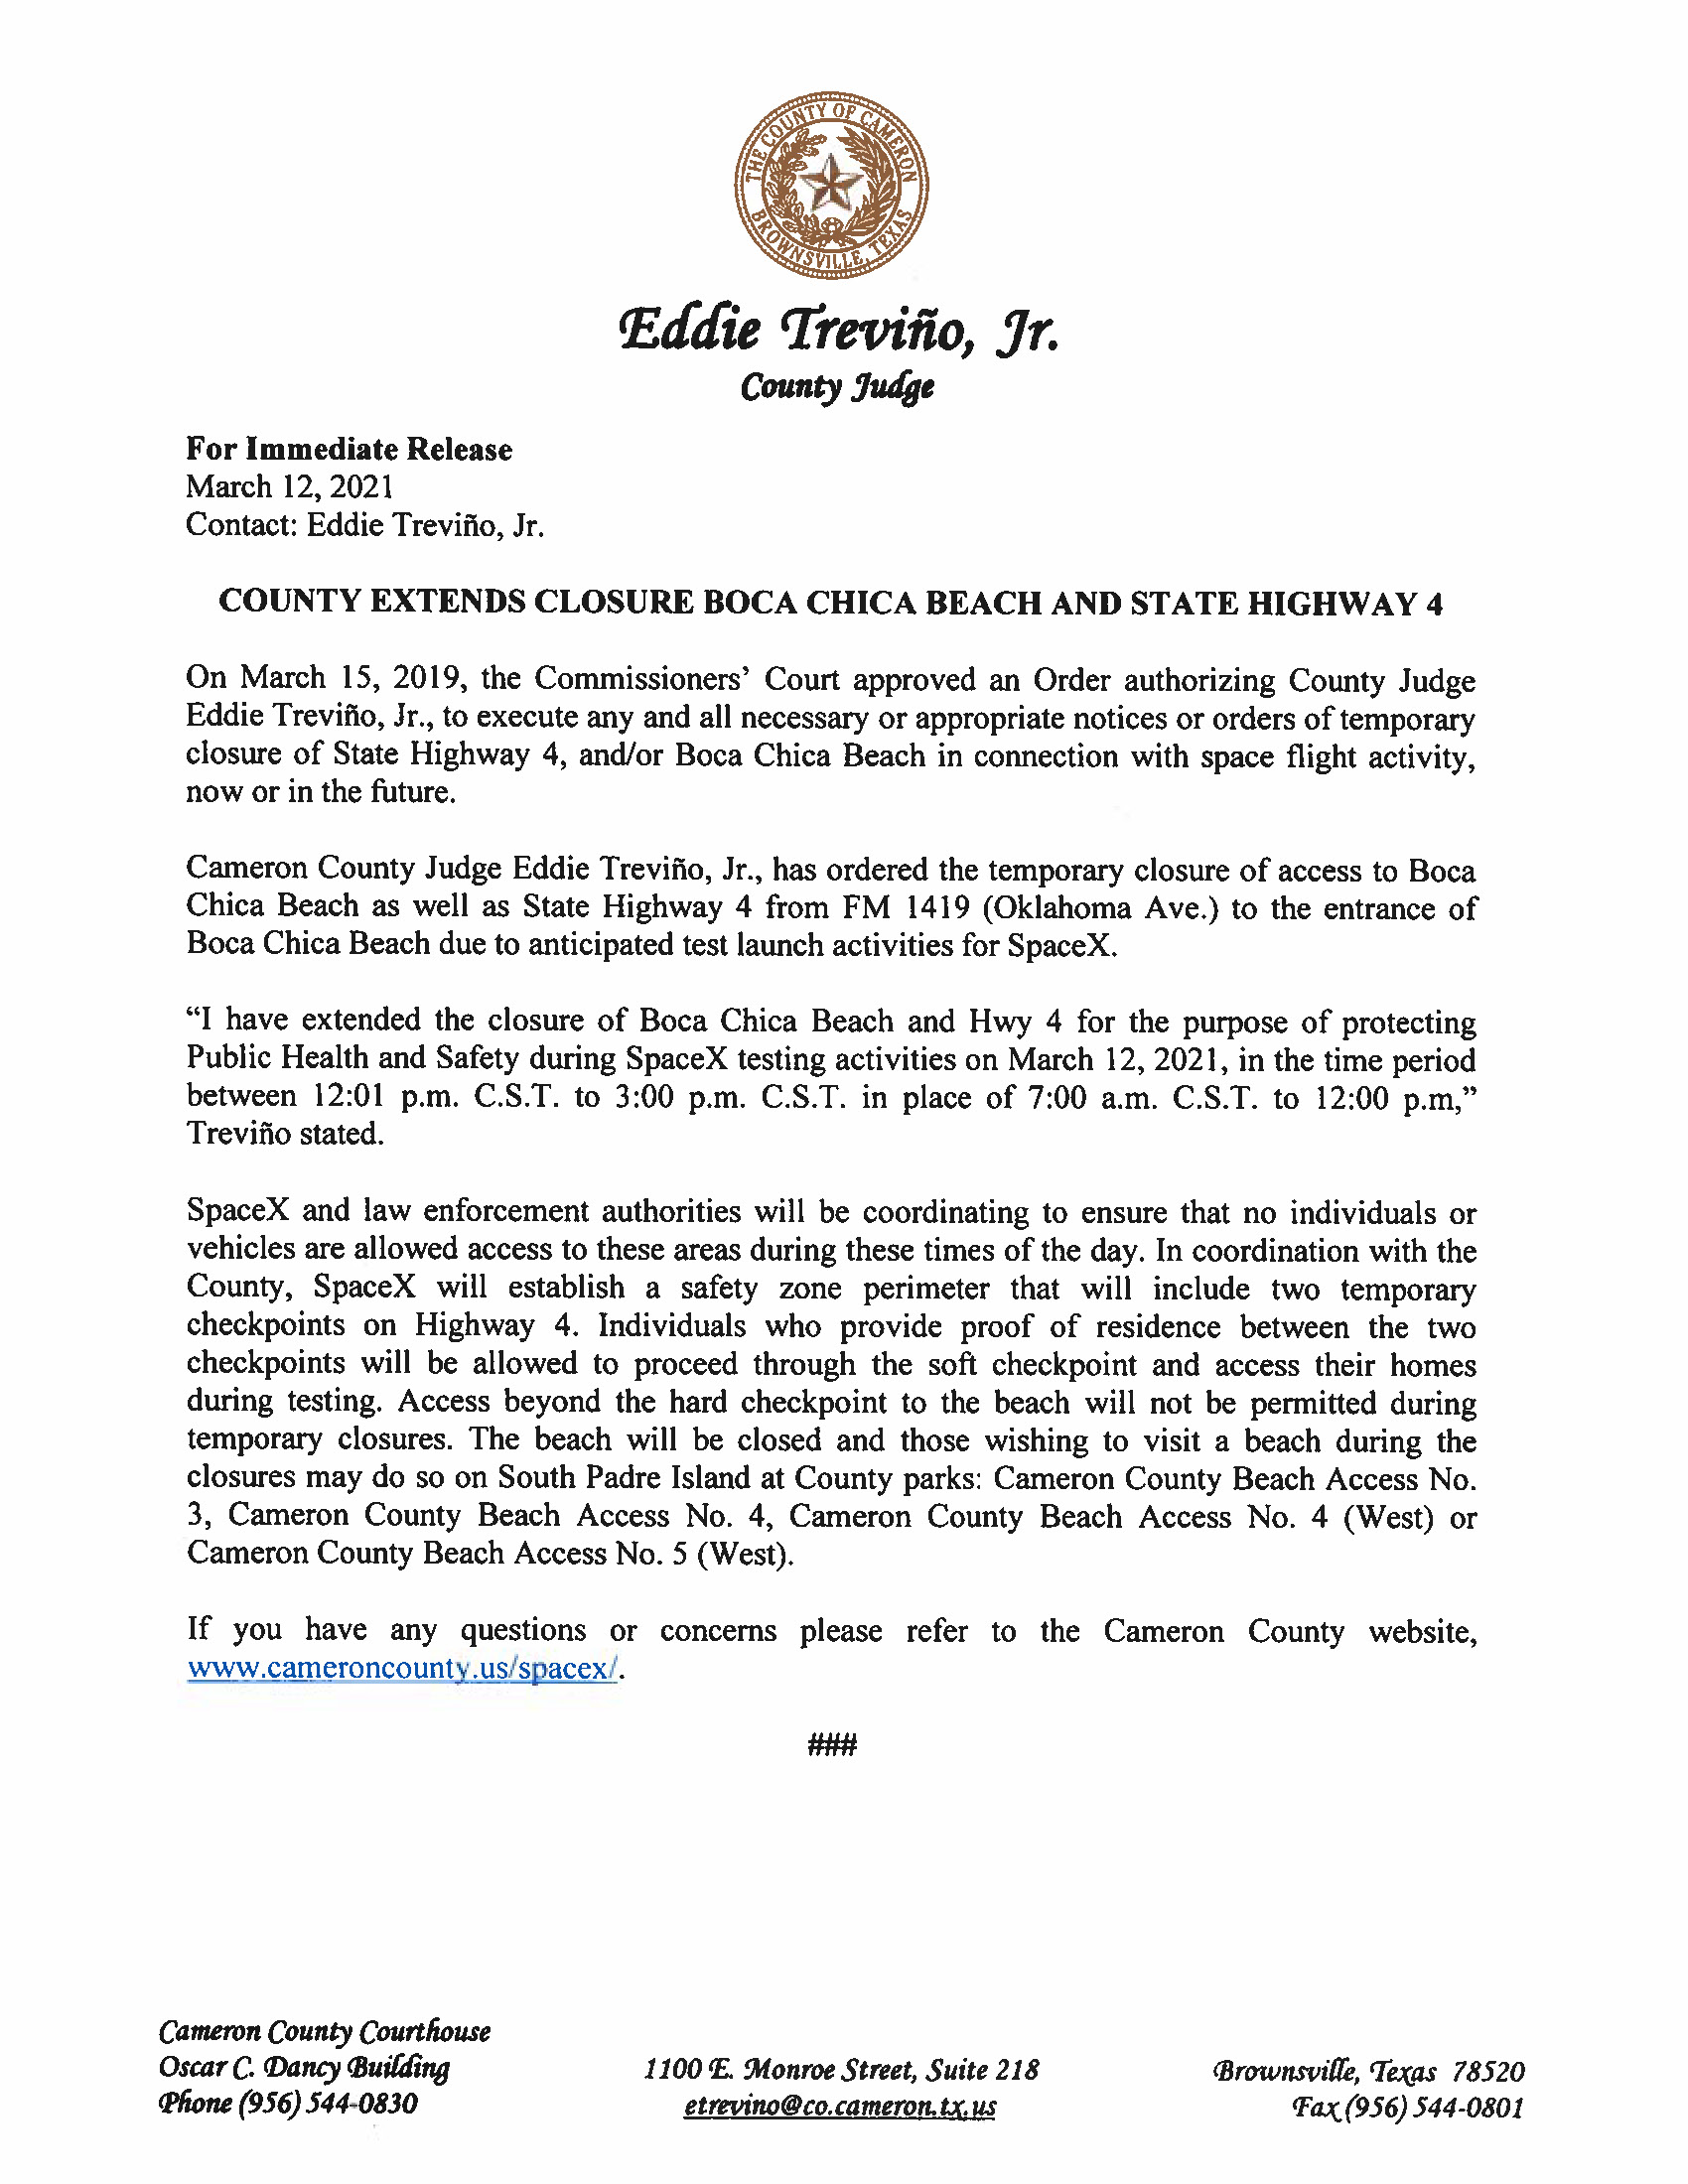 Press Release In English And Spanish.03.12.21 Page 1